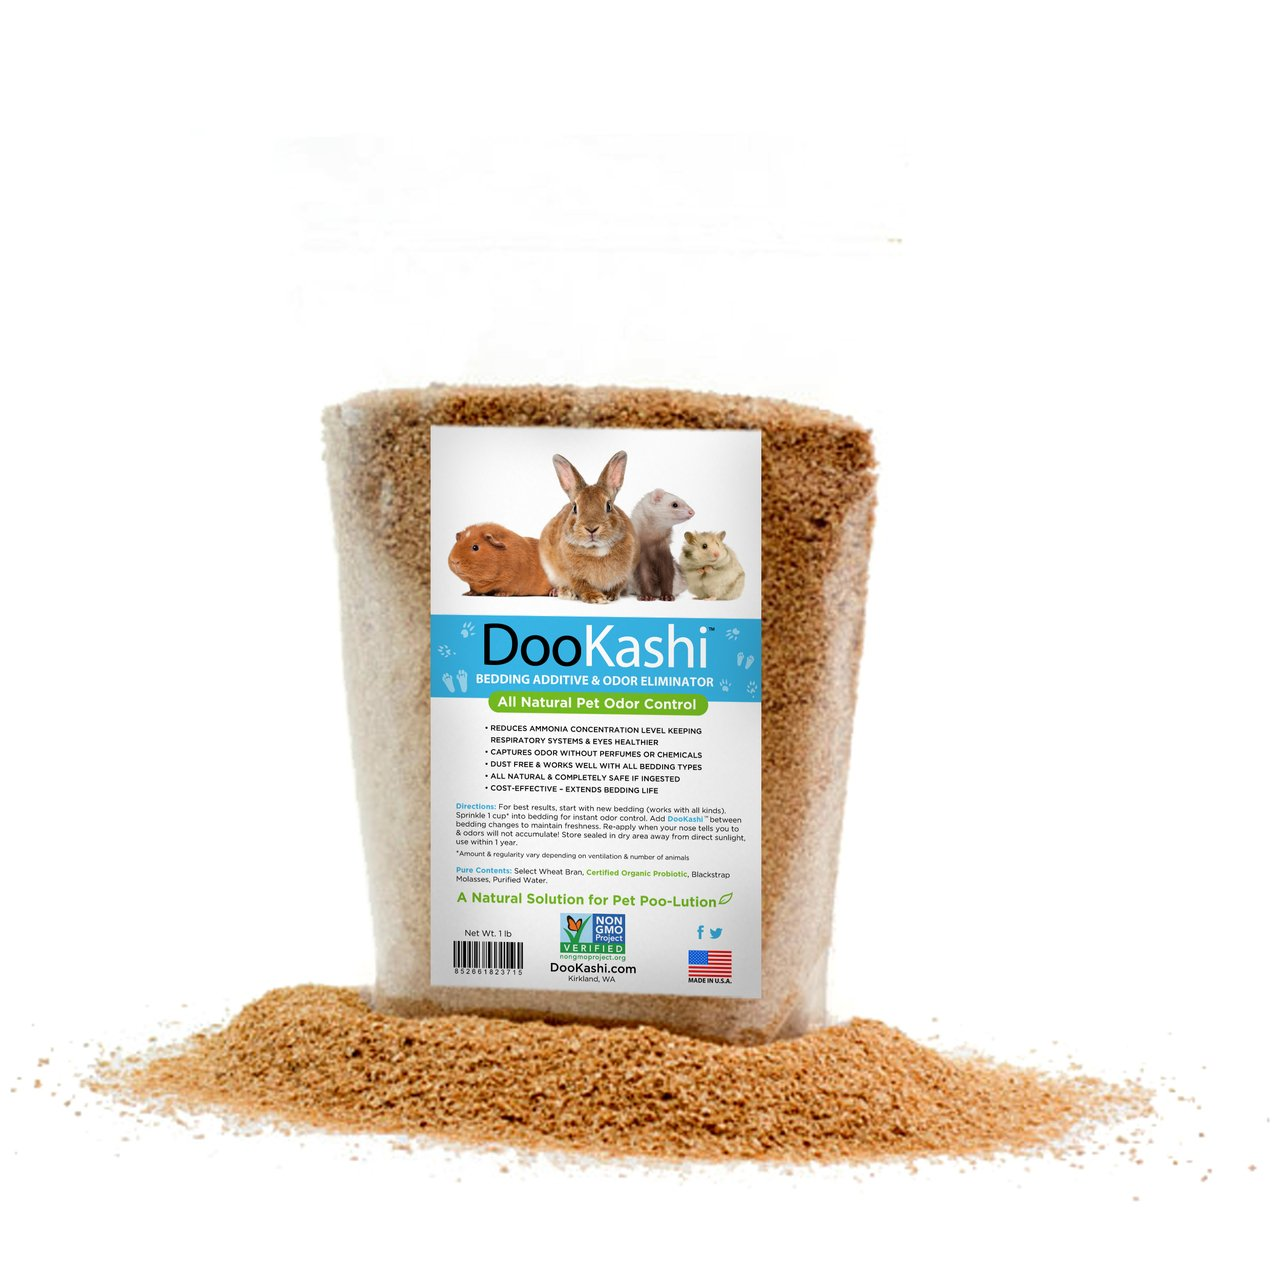 DooKashi for Small Animals Bedding Additive Extender & Odor Remover, 4.5 lb